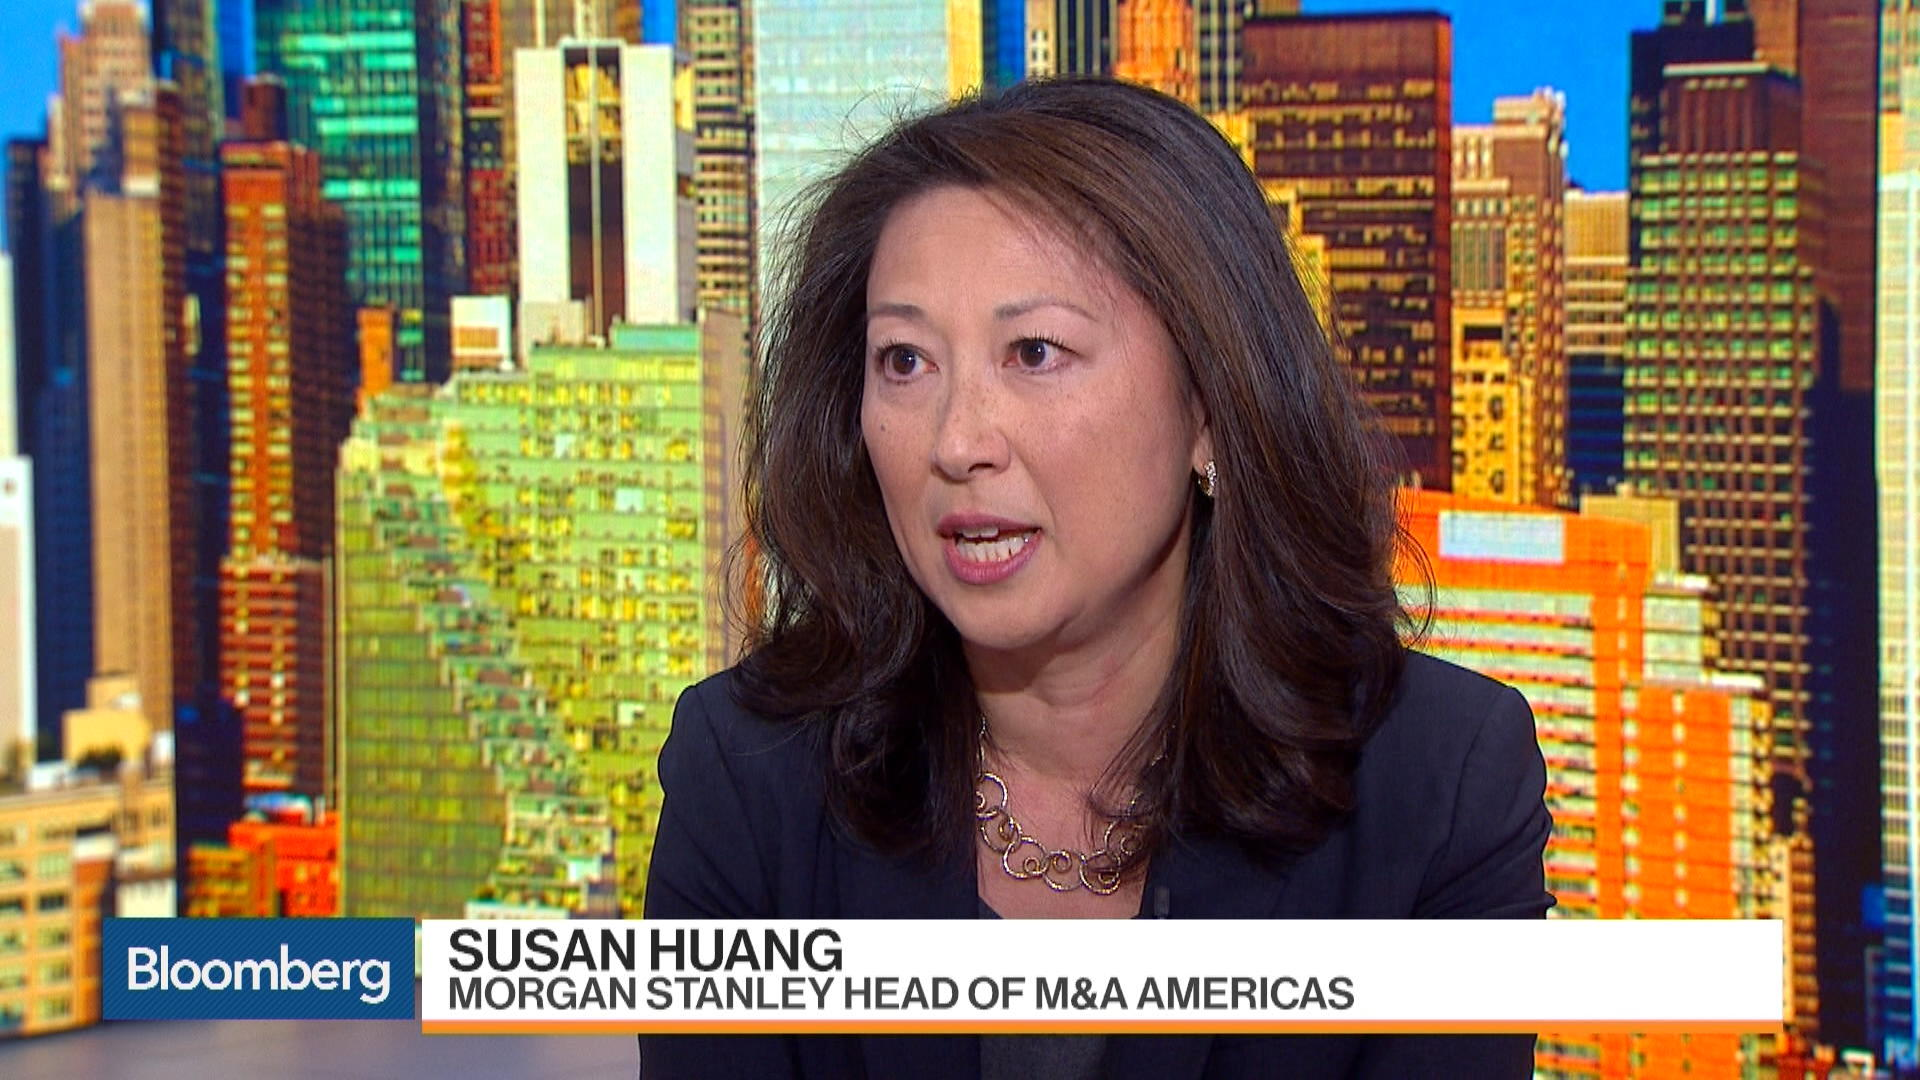 Brexit and M&A with Morgan Stanley's Susan Huang